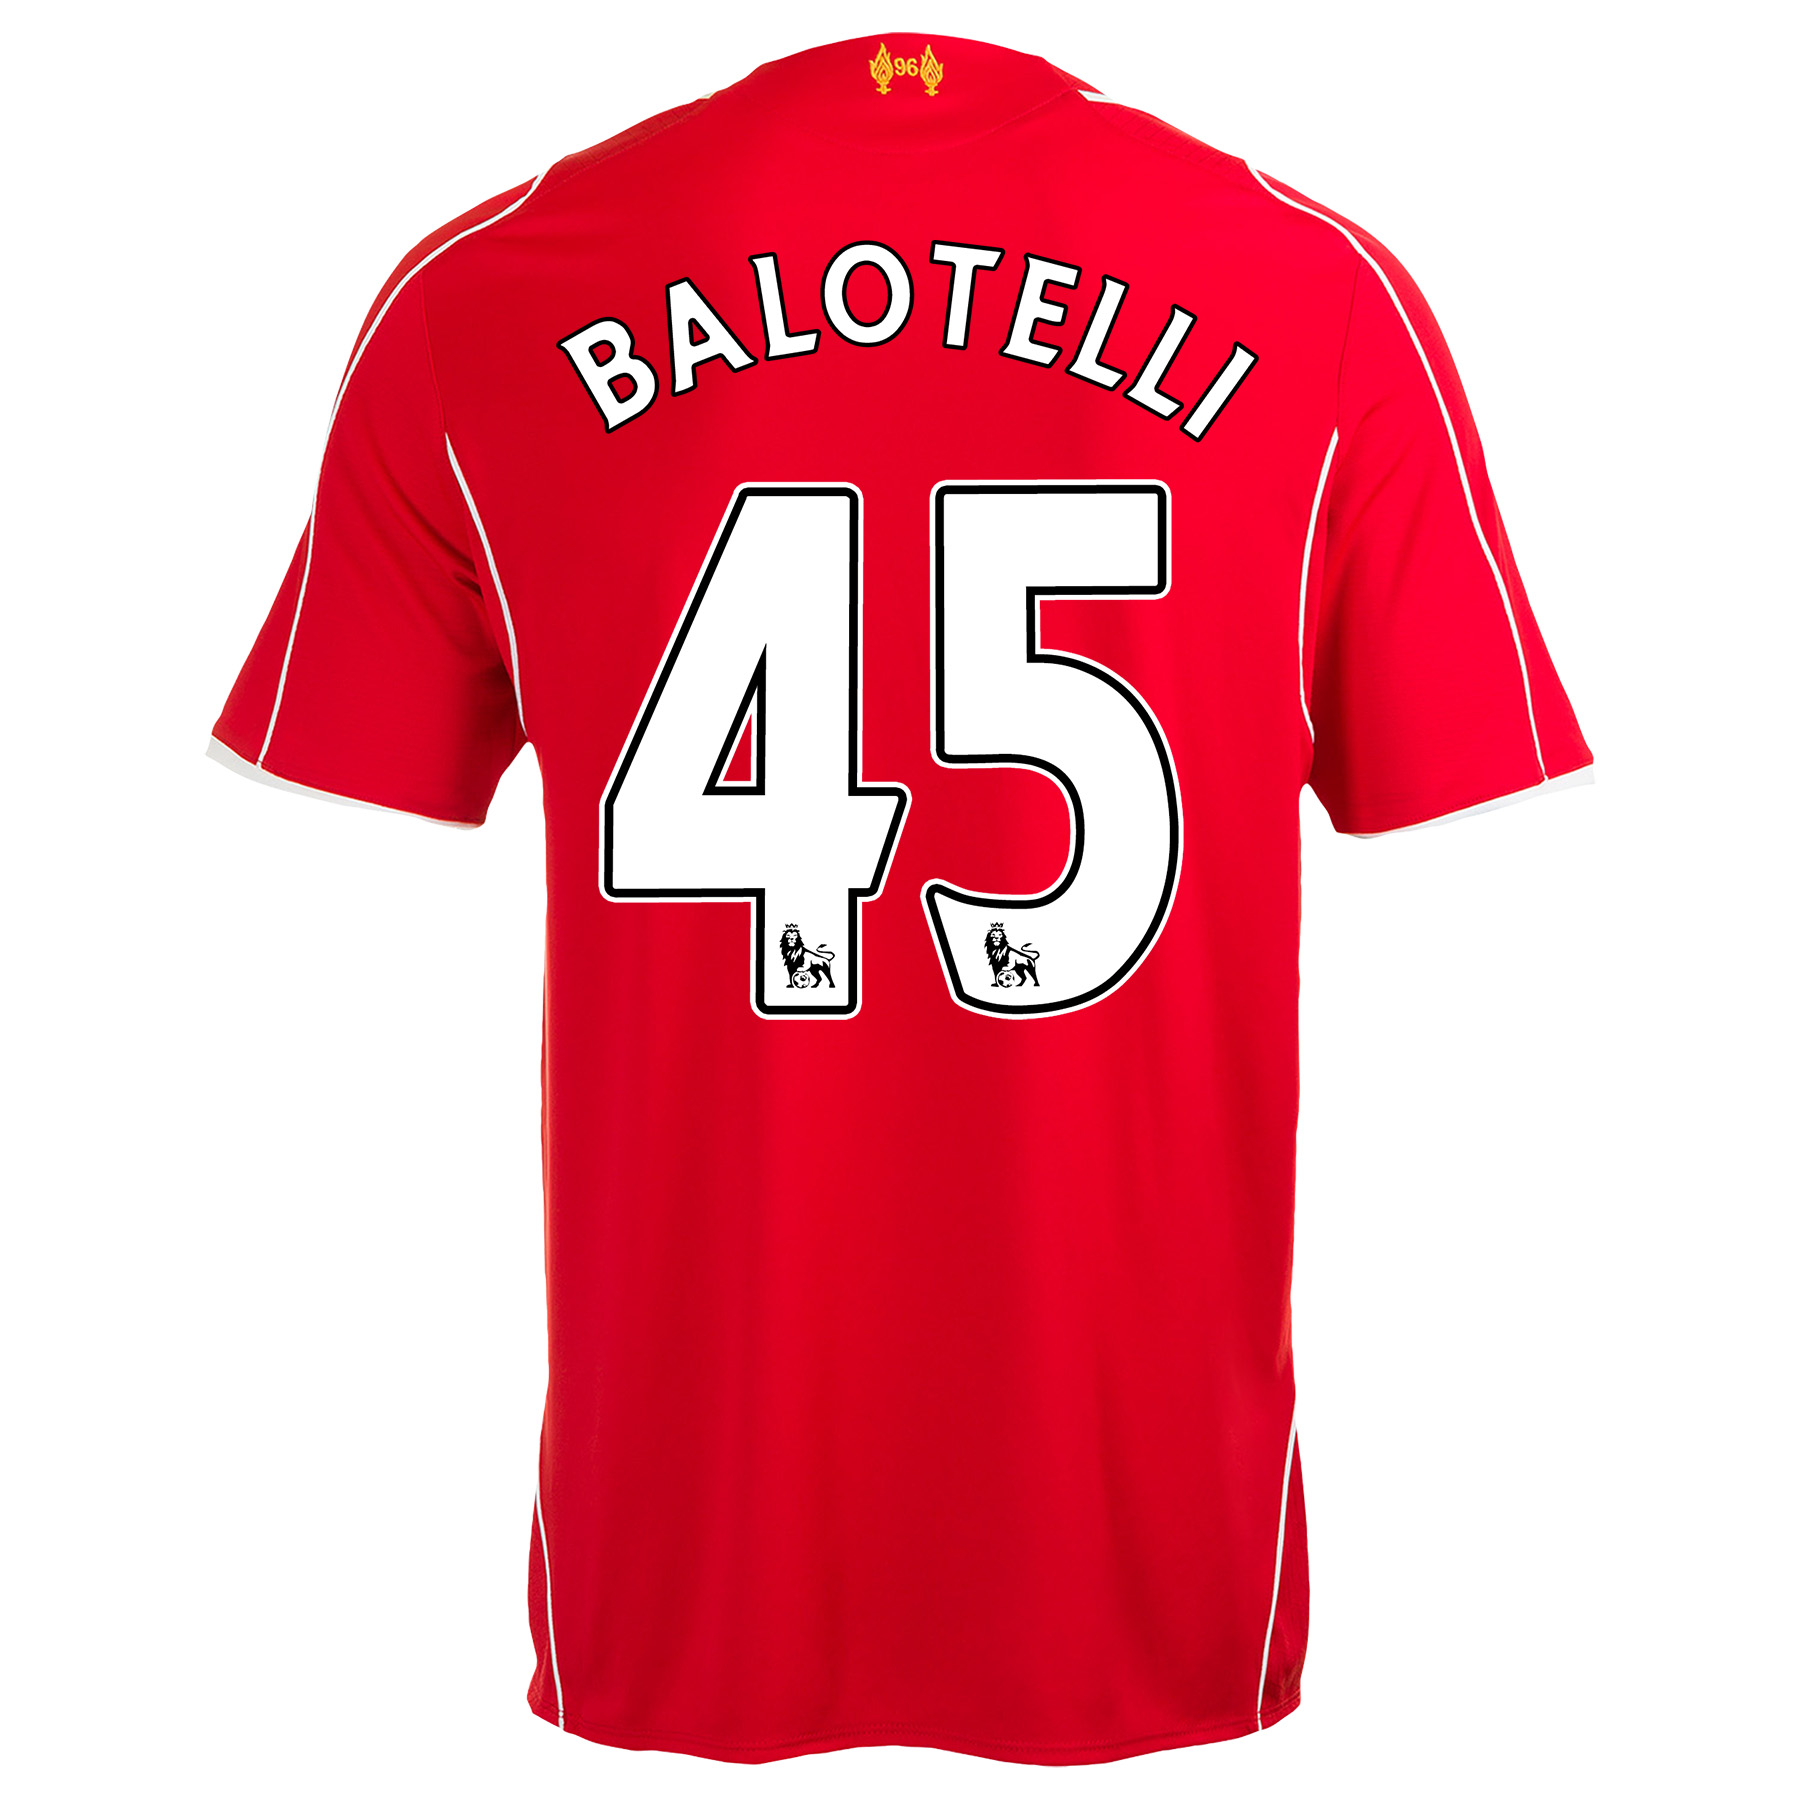 Liverpool Home Infant Kit 2014/15 with Balotelli 45 printing